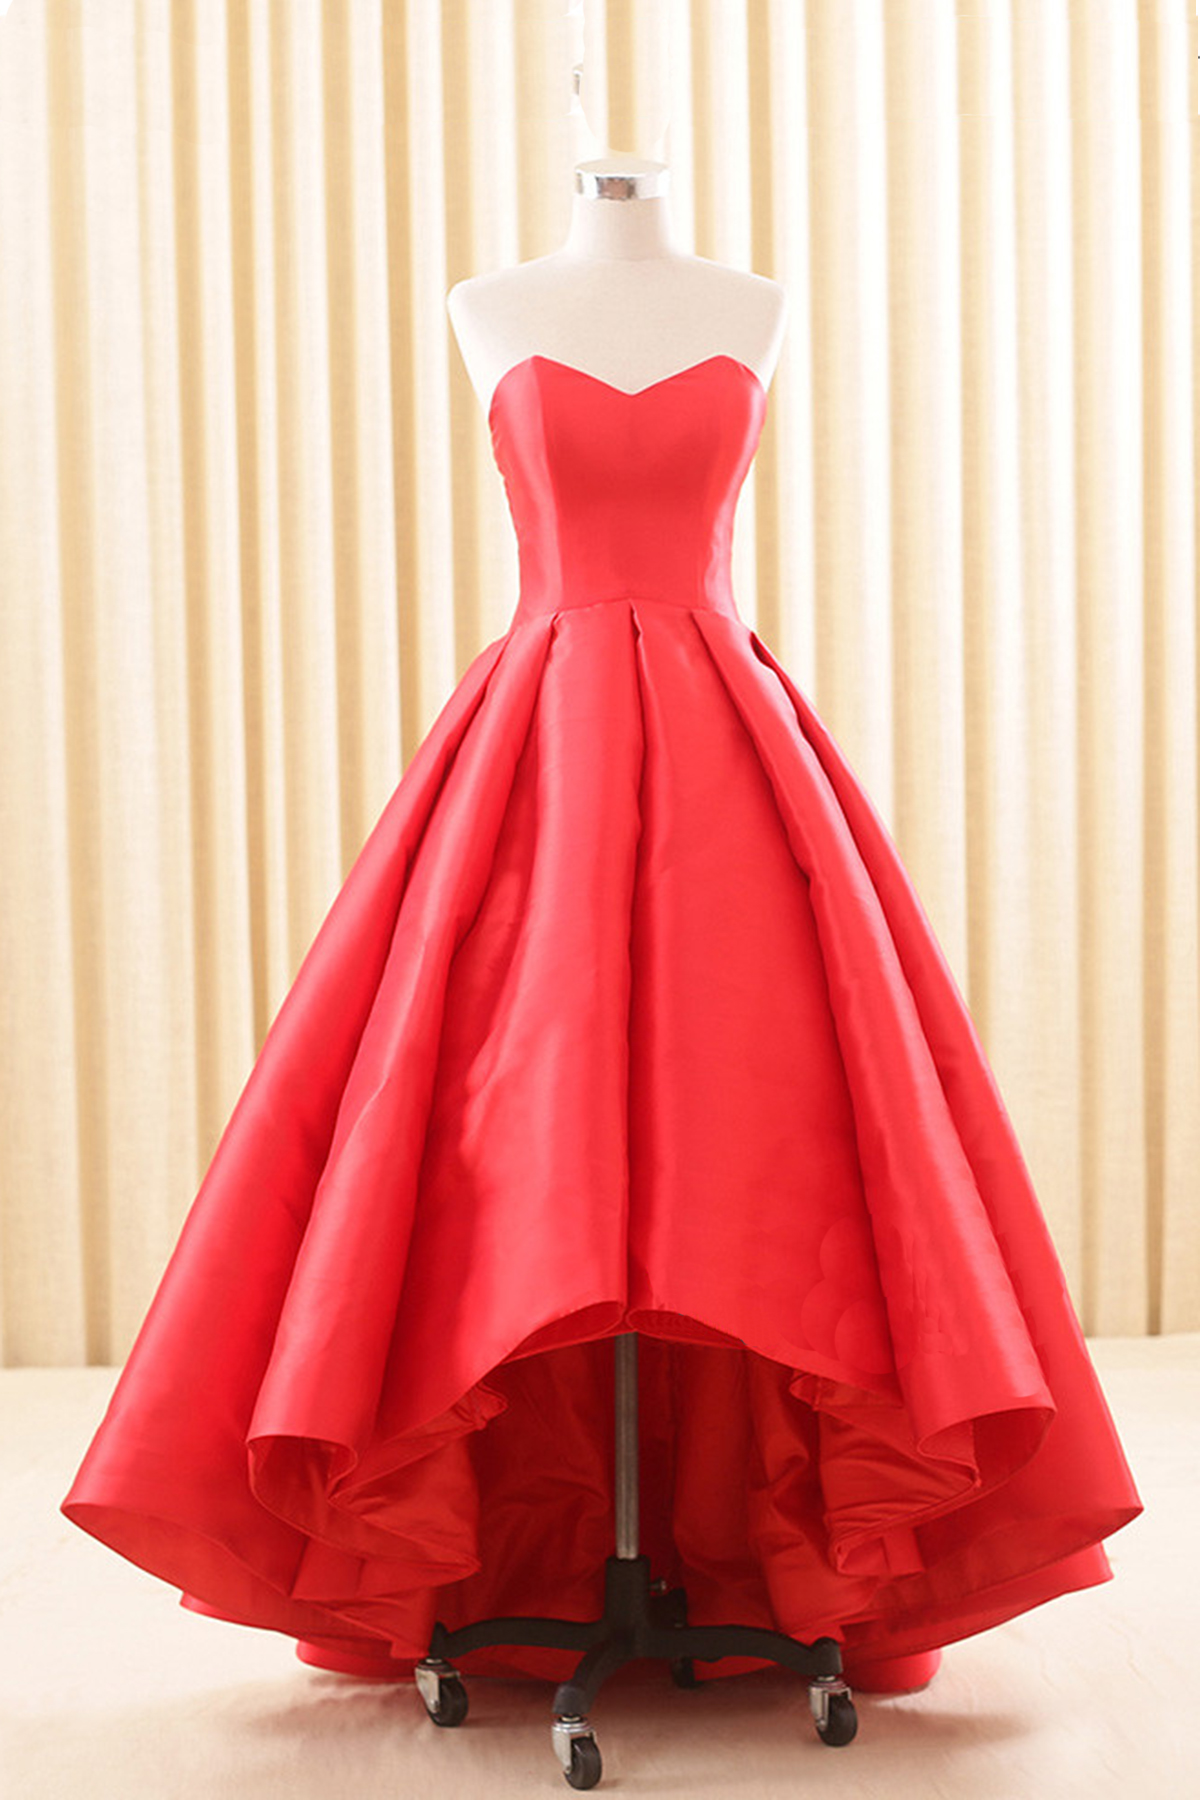 Sweetheart red satin high low homecoming dress strapless long sweetheart red satin high low homecoming dress strapless long pleated prom dresses ombrellifo Choice Image